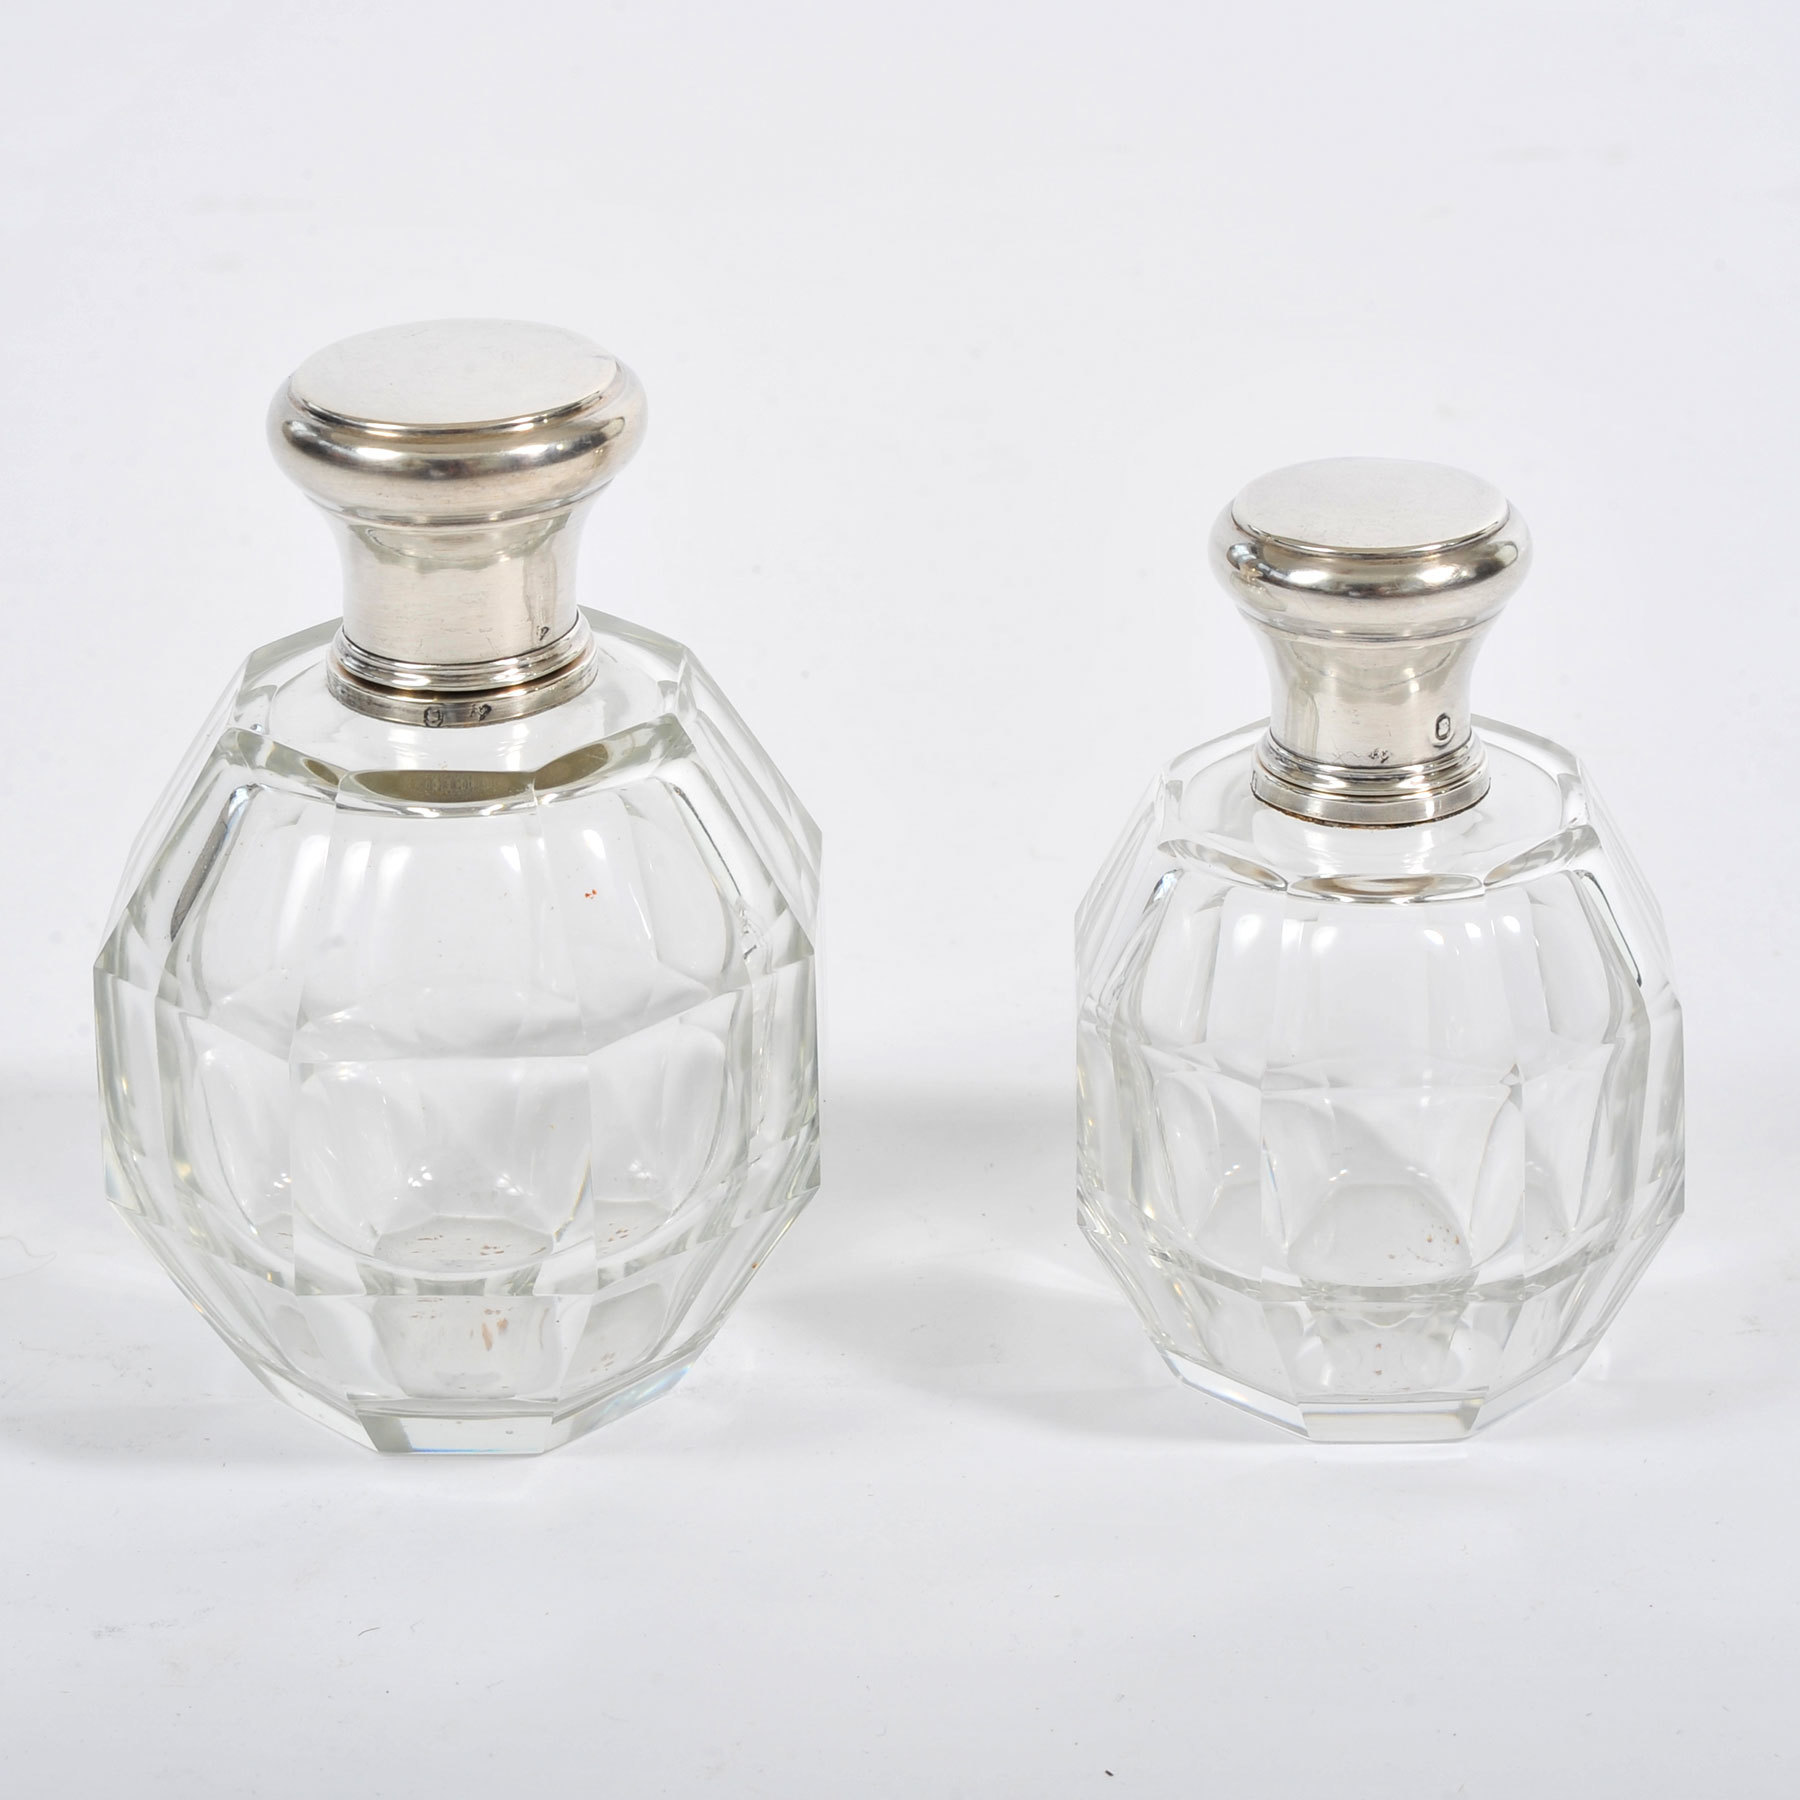 Two Scent Bottles 01 Vw